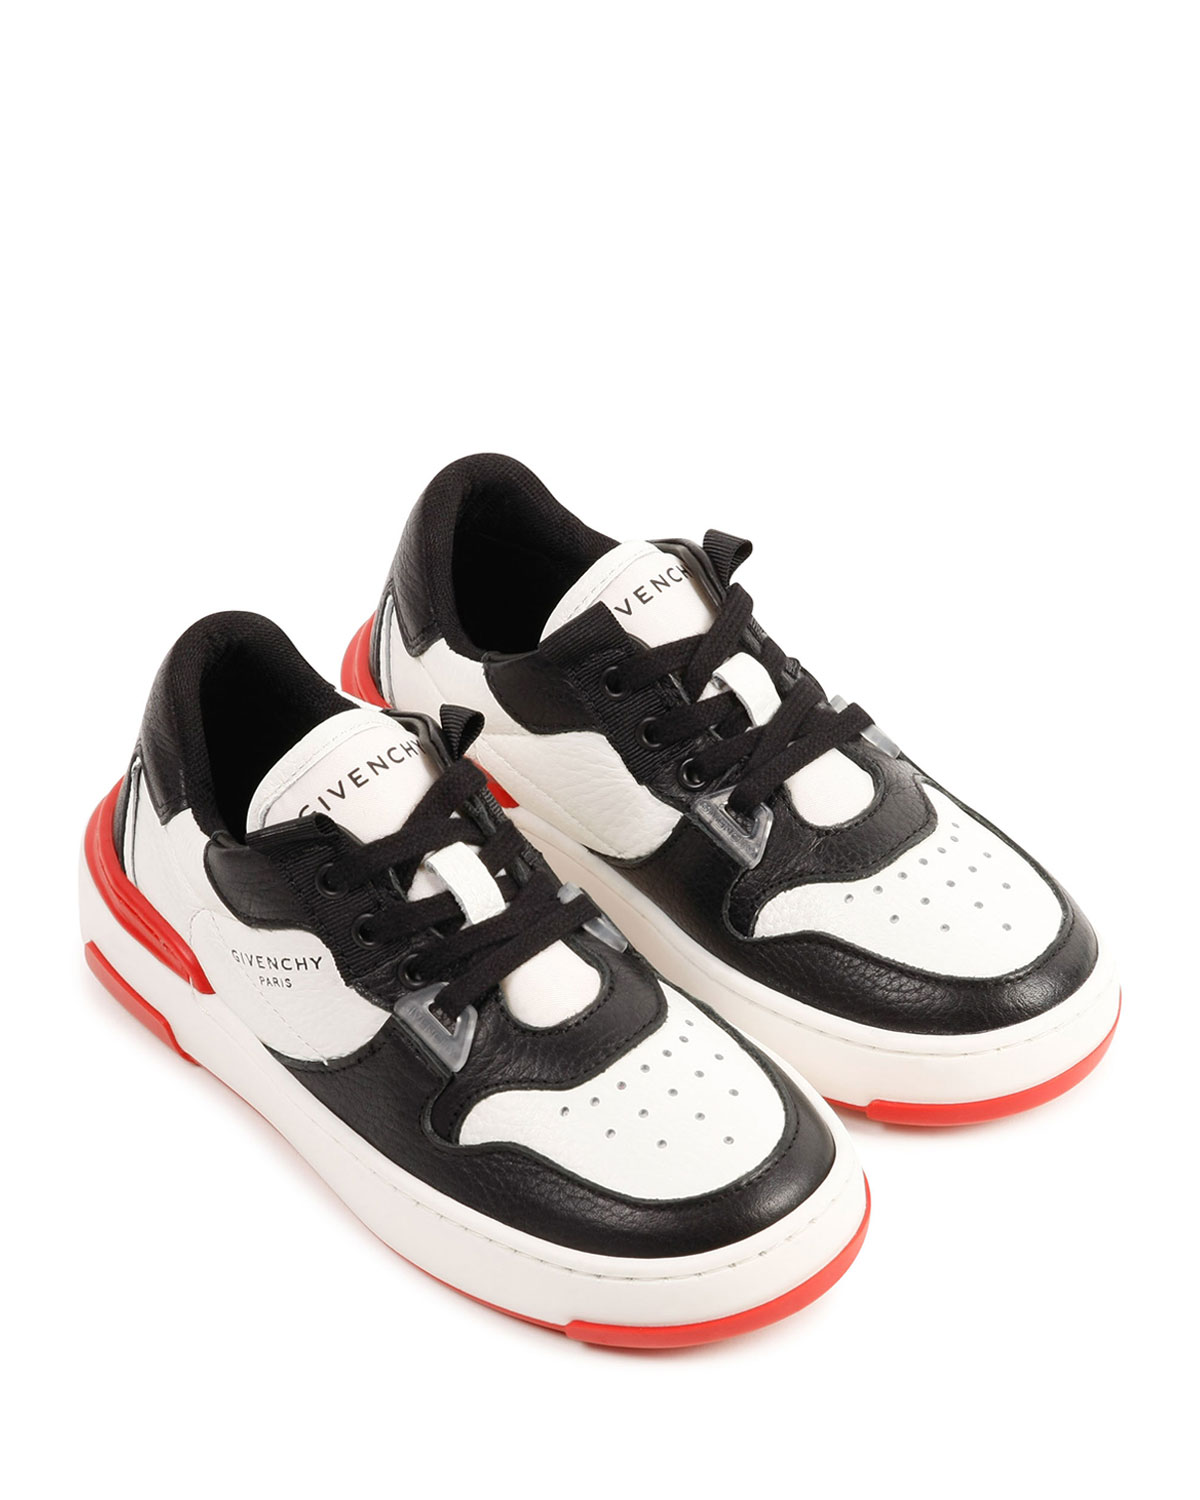 Boy's Tricolor Leather Low-Top Sneakers, Toddlers